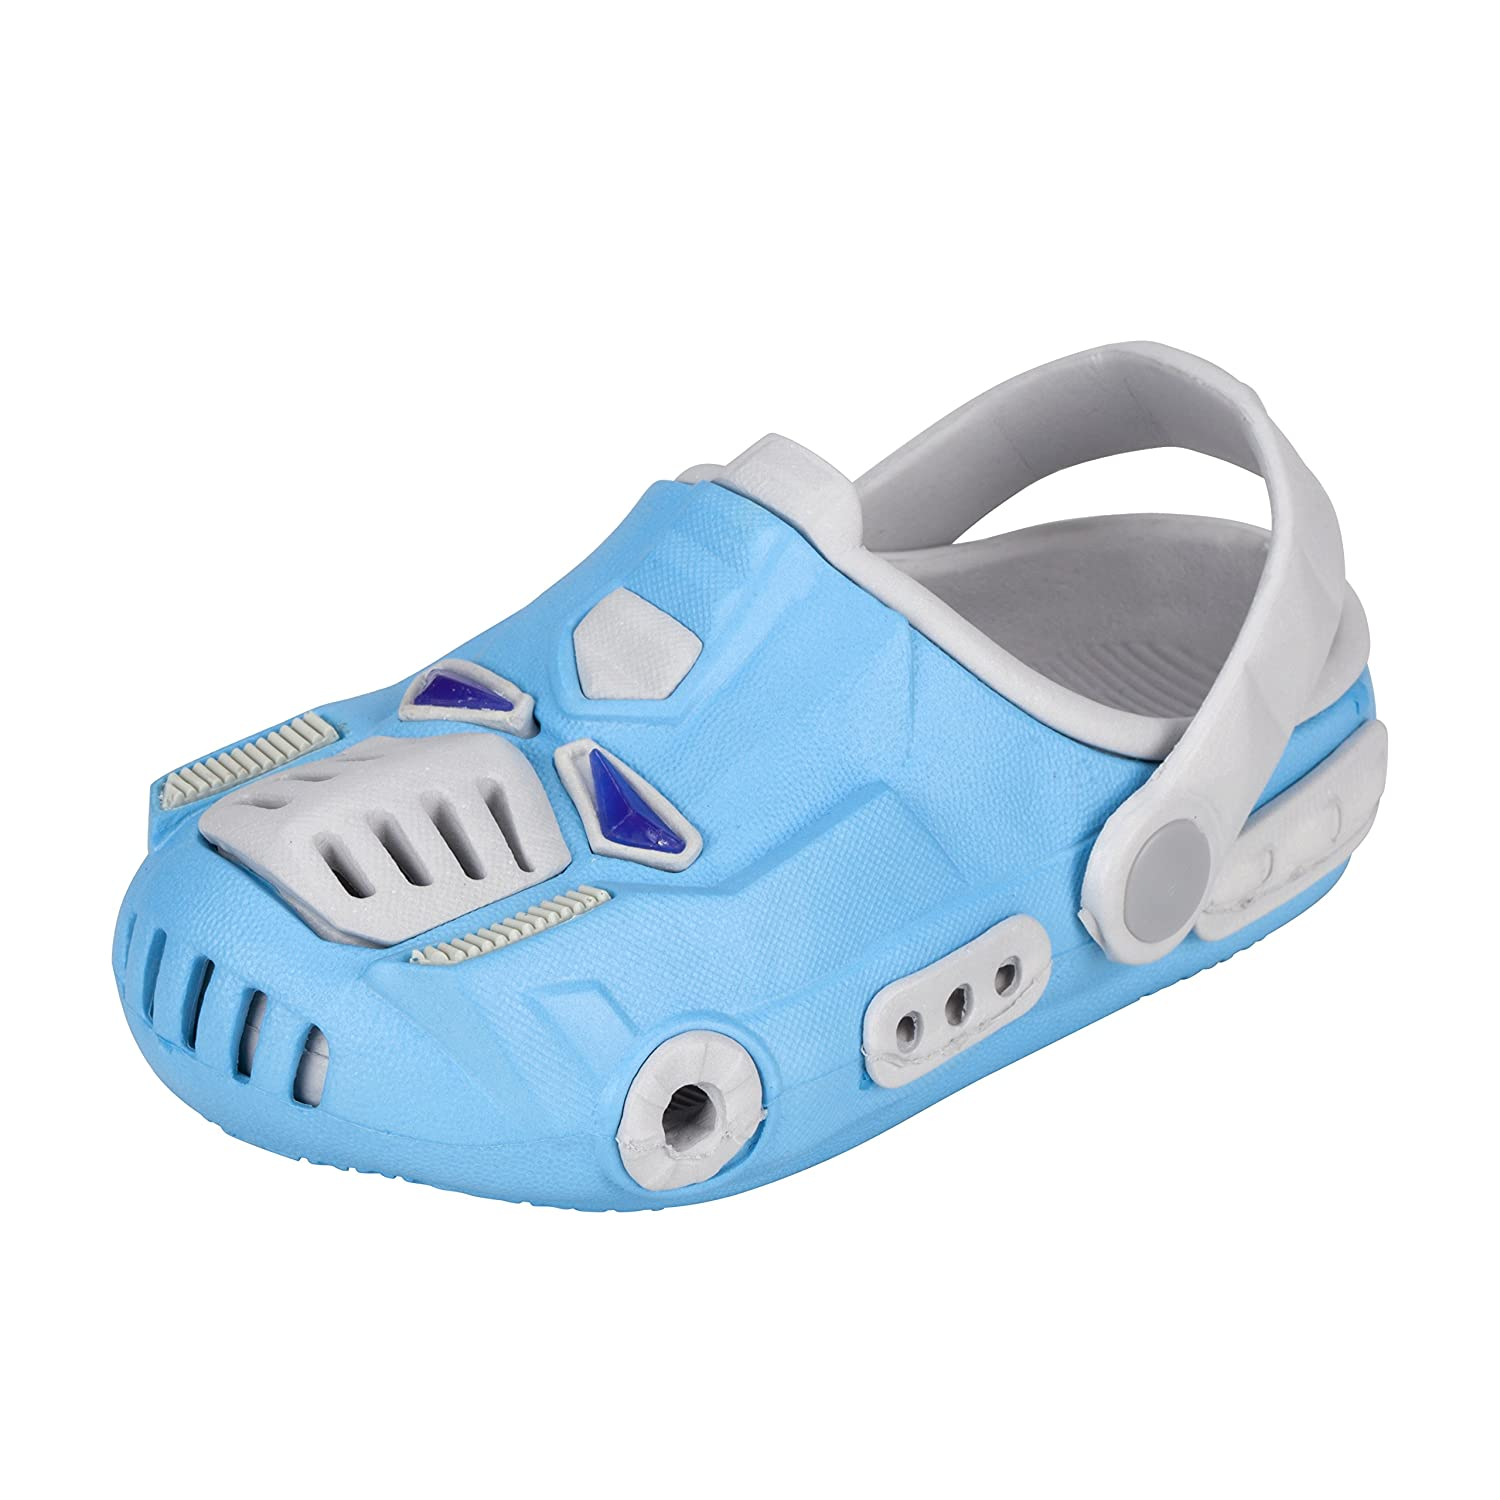 JeGes Caterpillar Kids Clogs - Summer Sandals - Best Quality for Beach, Pool,  Garden Or Home - UK Size 2-11 Or EU Size 18-29: Amazon.co.uk: Shoes & Bags